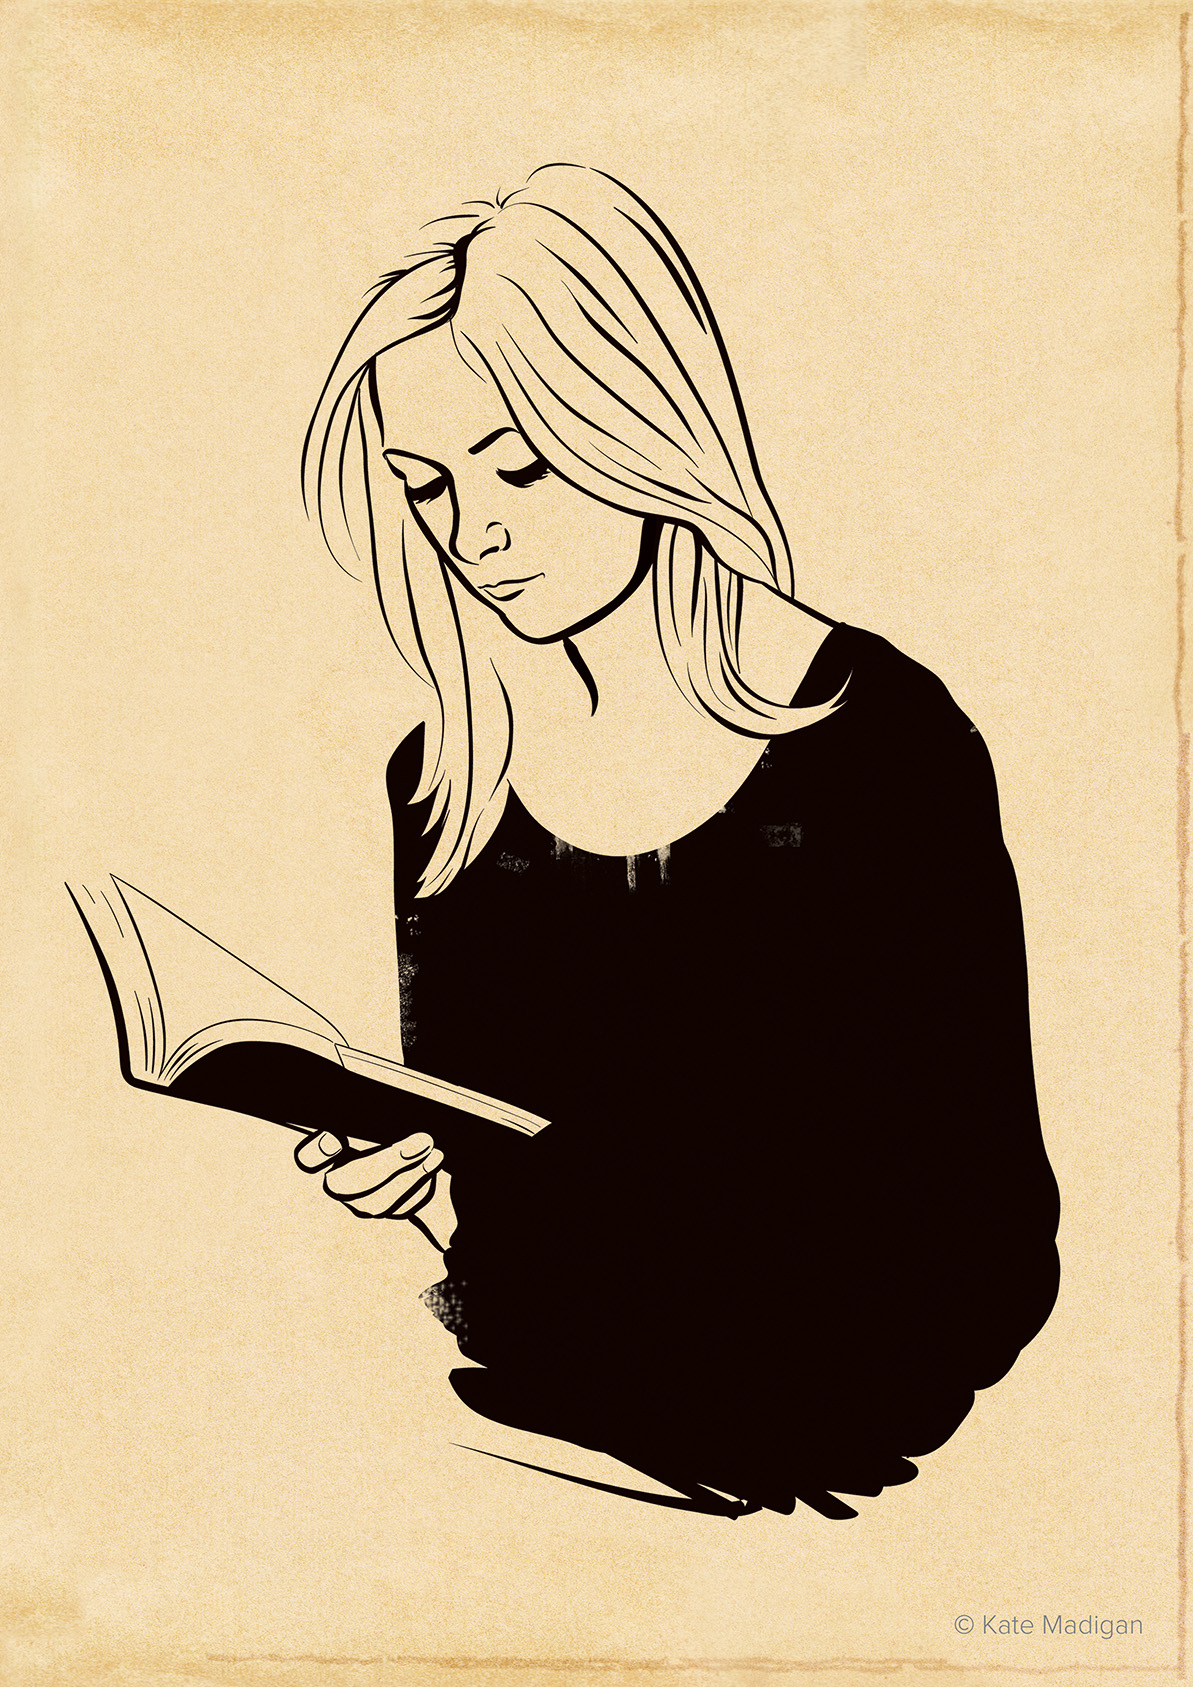 Portrait of Steph, one of the staff at Blackwell's, immersed in a book.. Line drawing on toned, distressed paper. Copyright Kate Madigan.